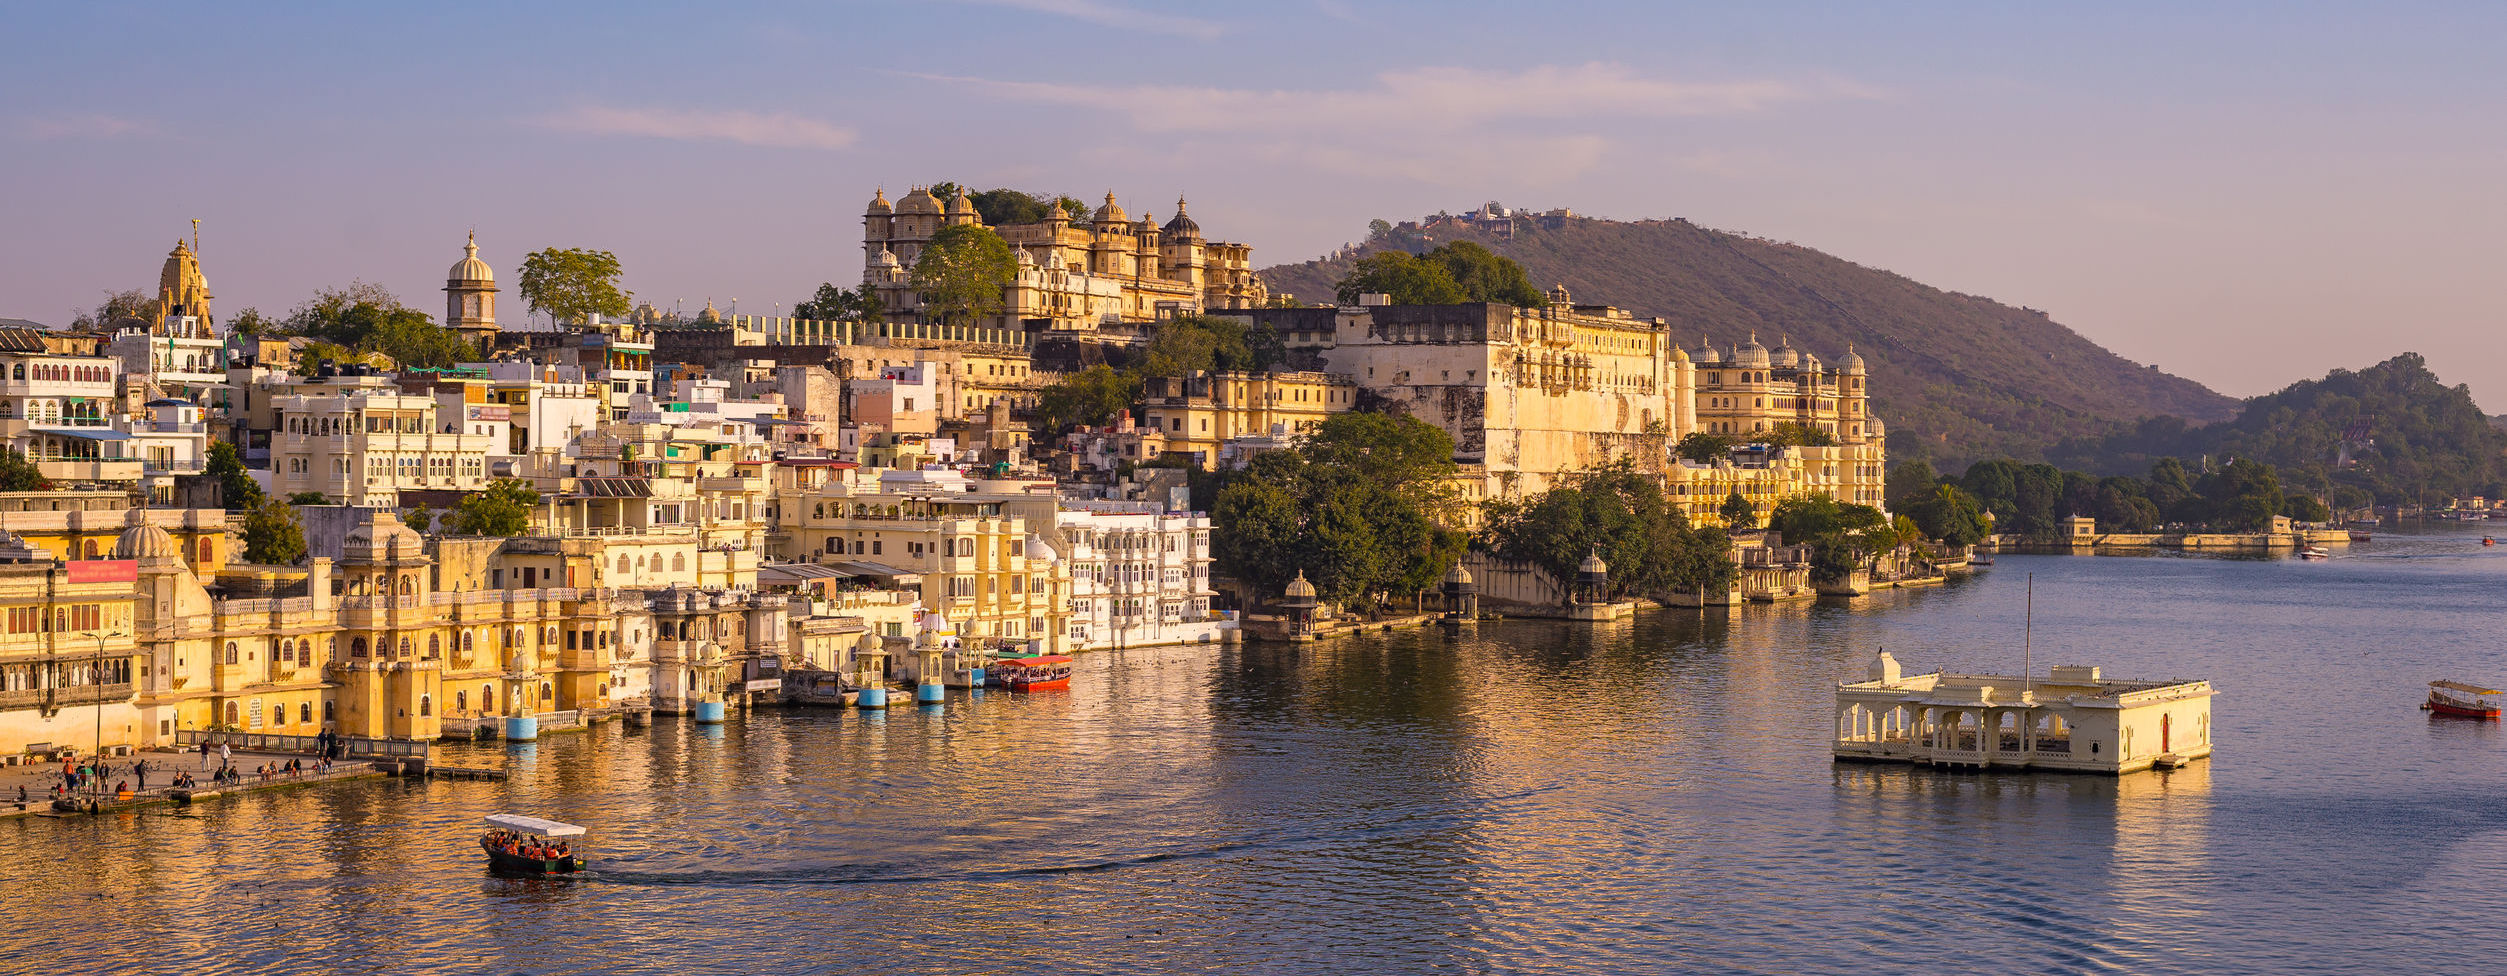 udaipur-city-palace-view-from-lake